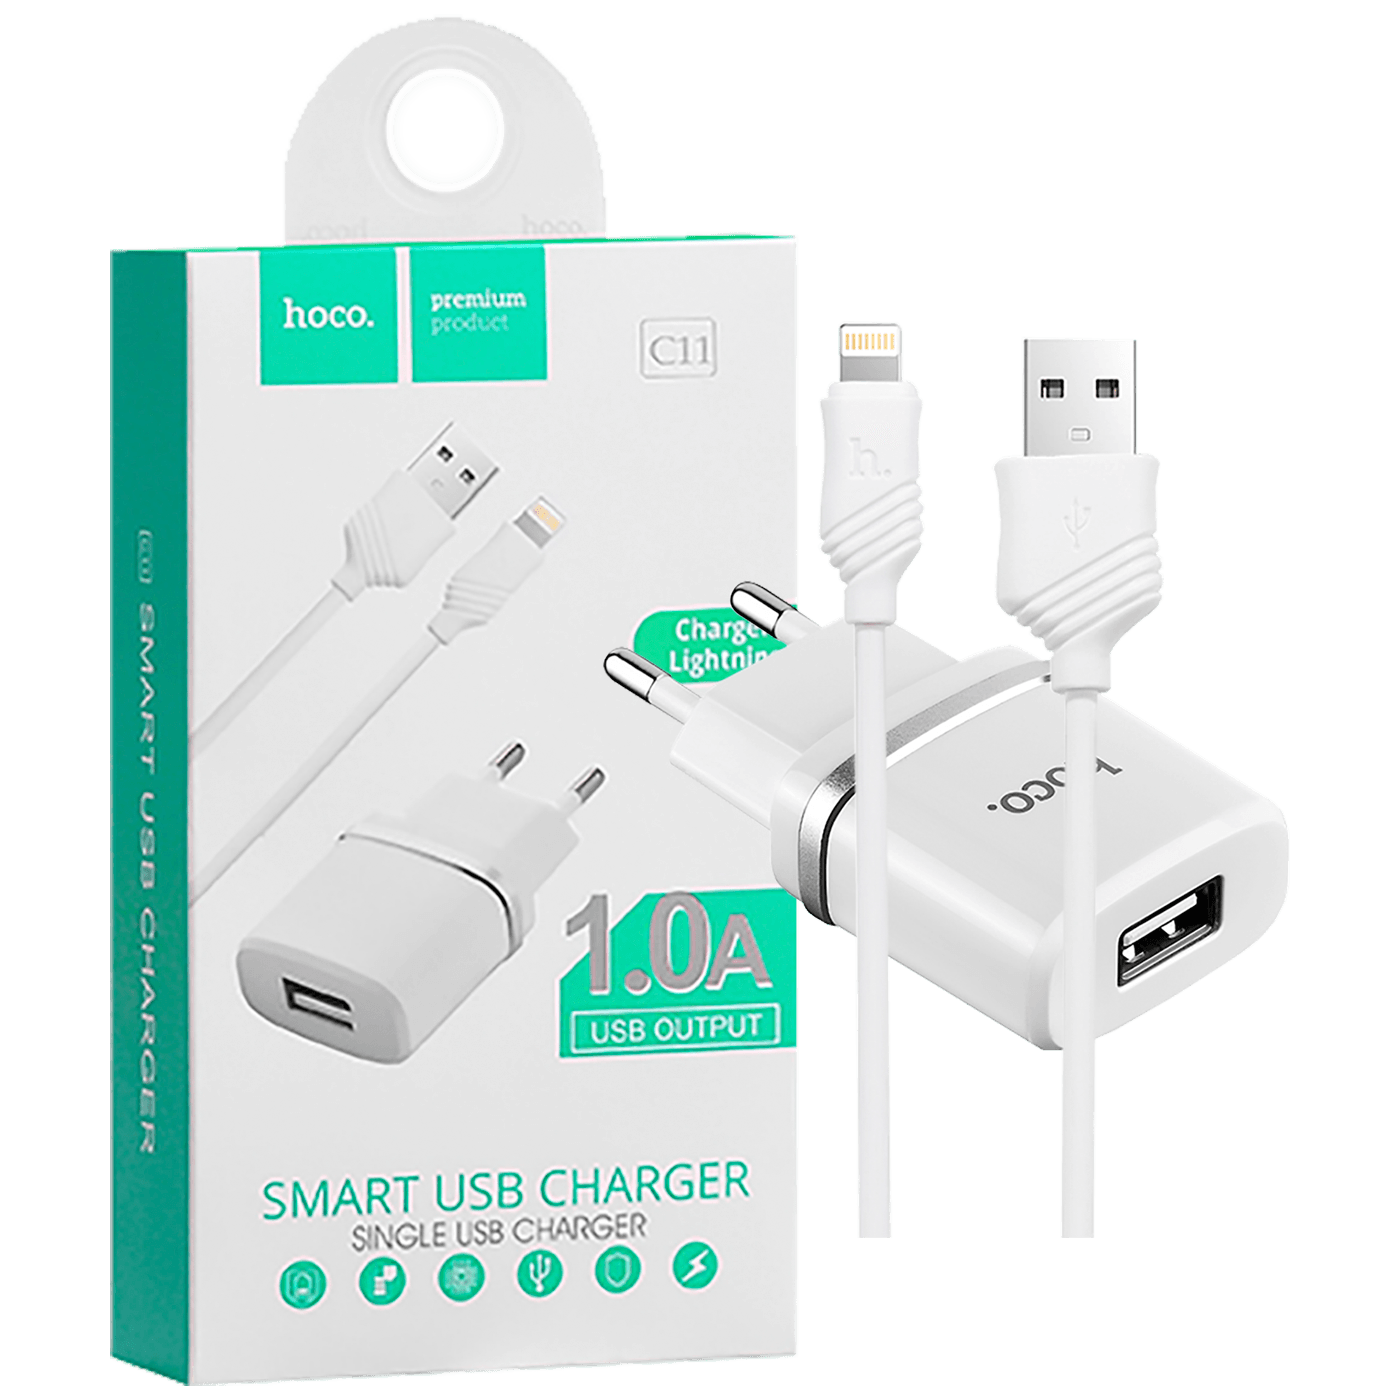 hoco. - C11 Smart single USB, Lightning